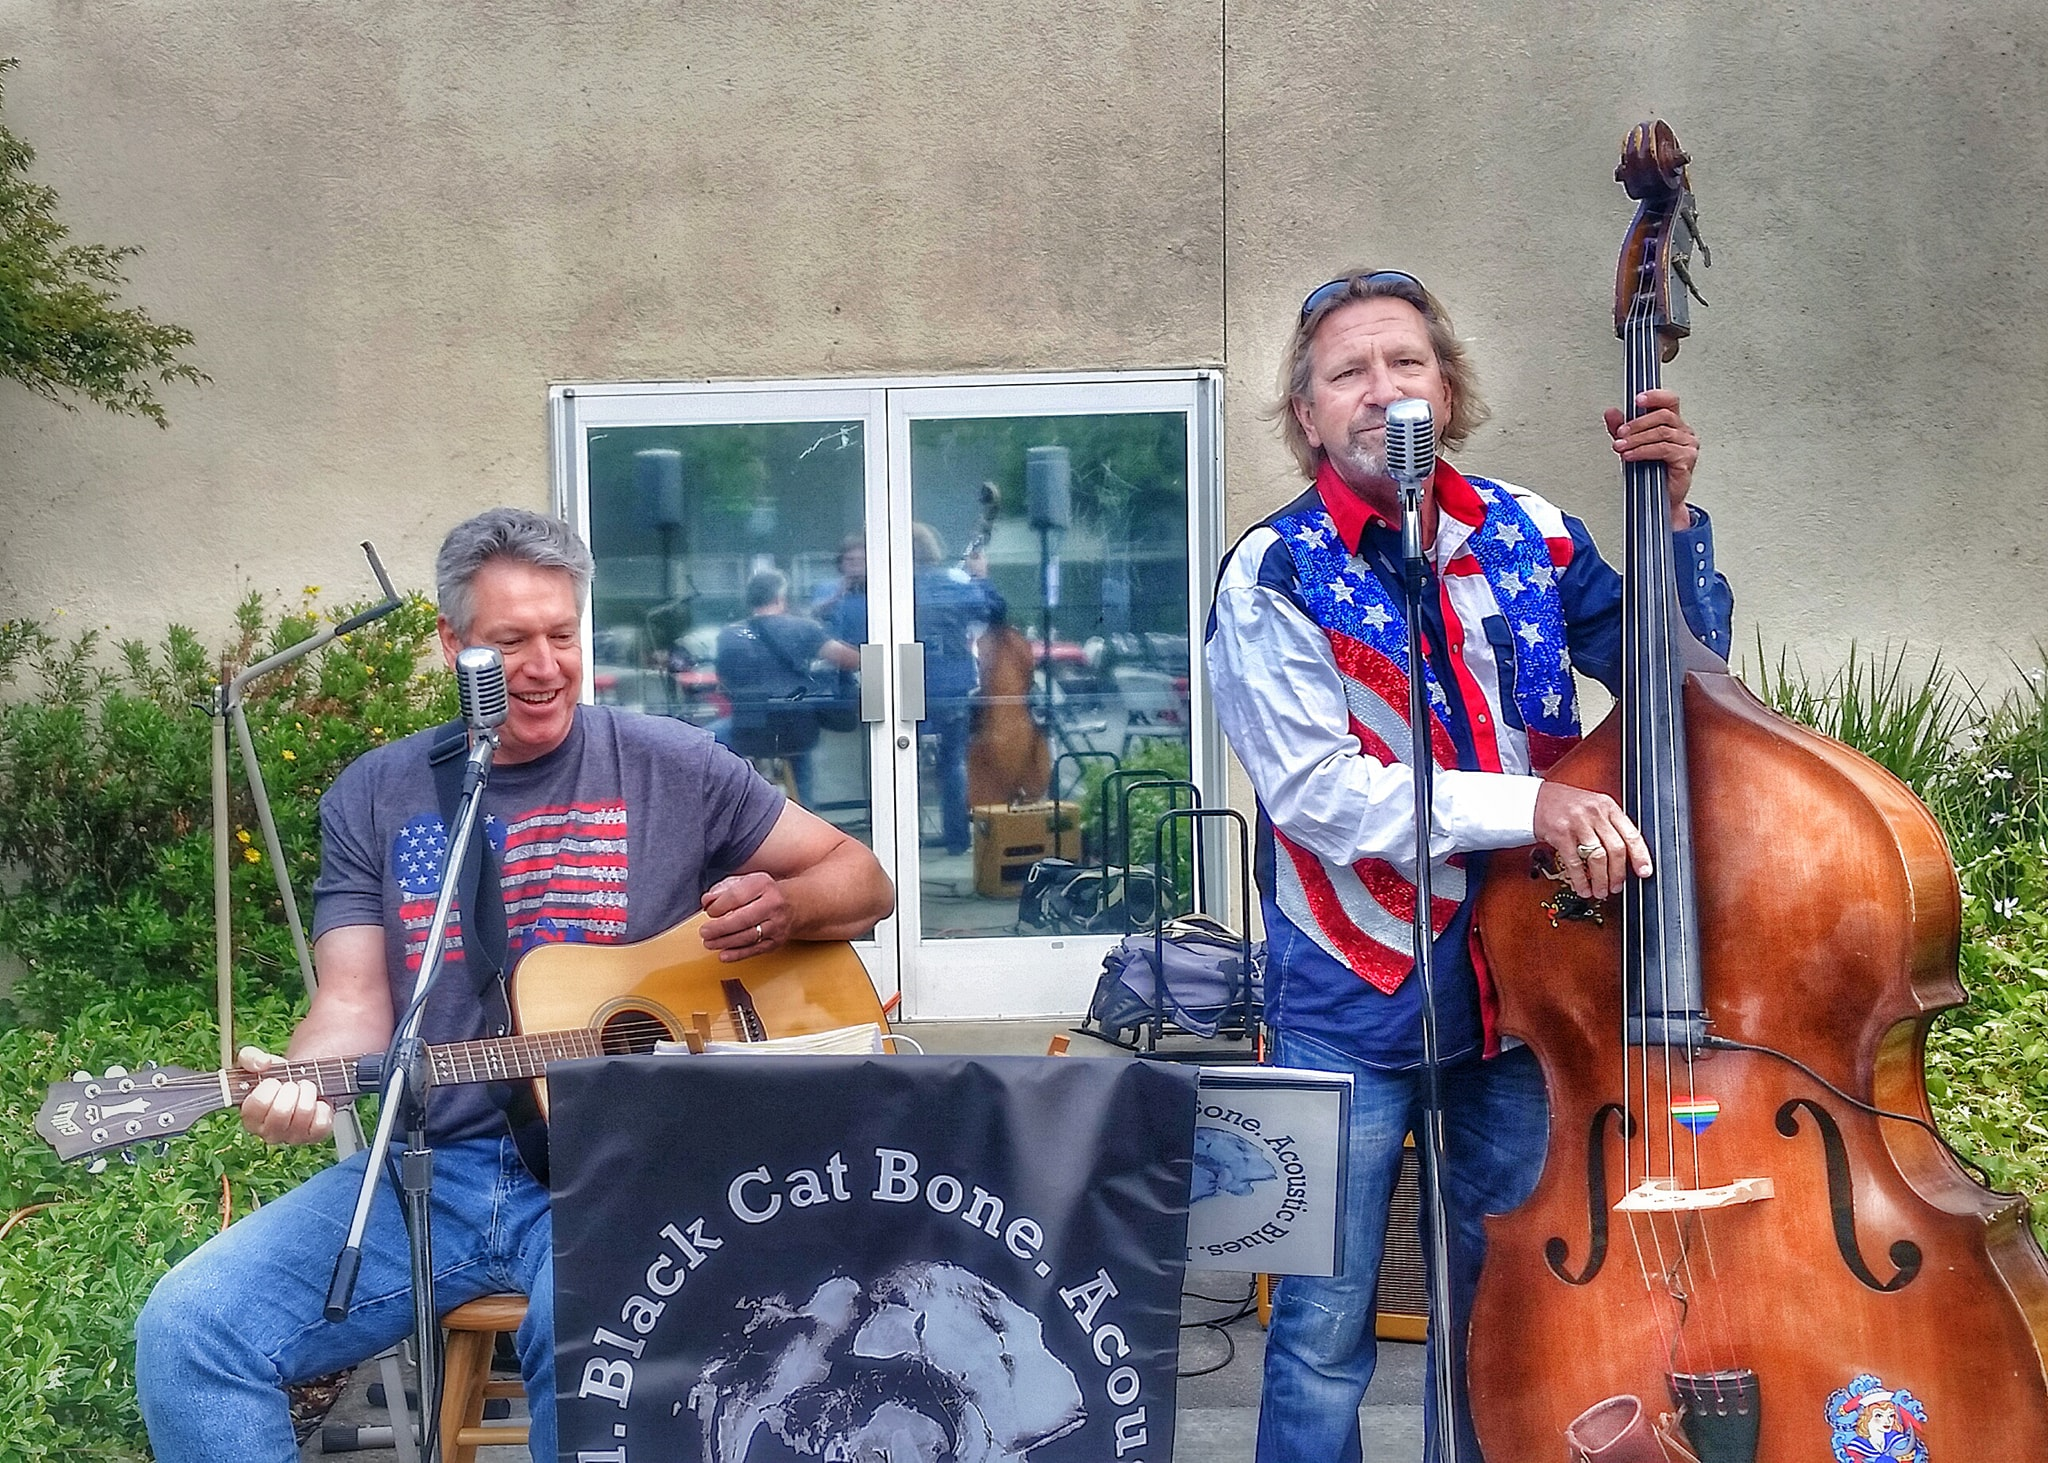 Black Cat Bone Band playing music at the Fourth of JUly Parade, Rob Sundbert Golf Tournamnet